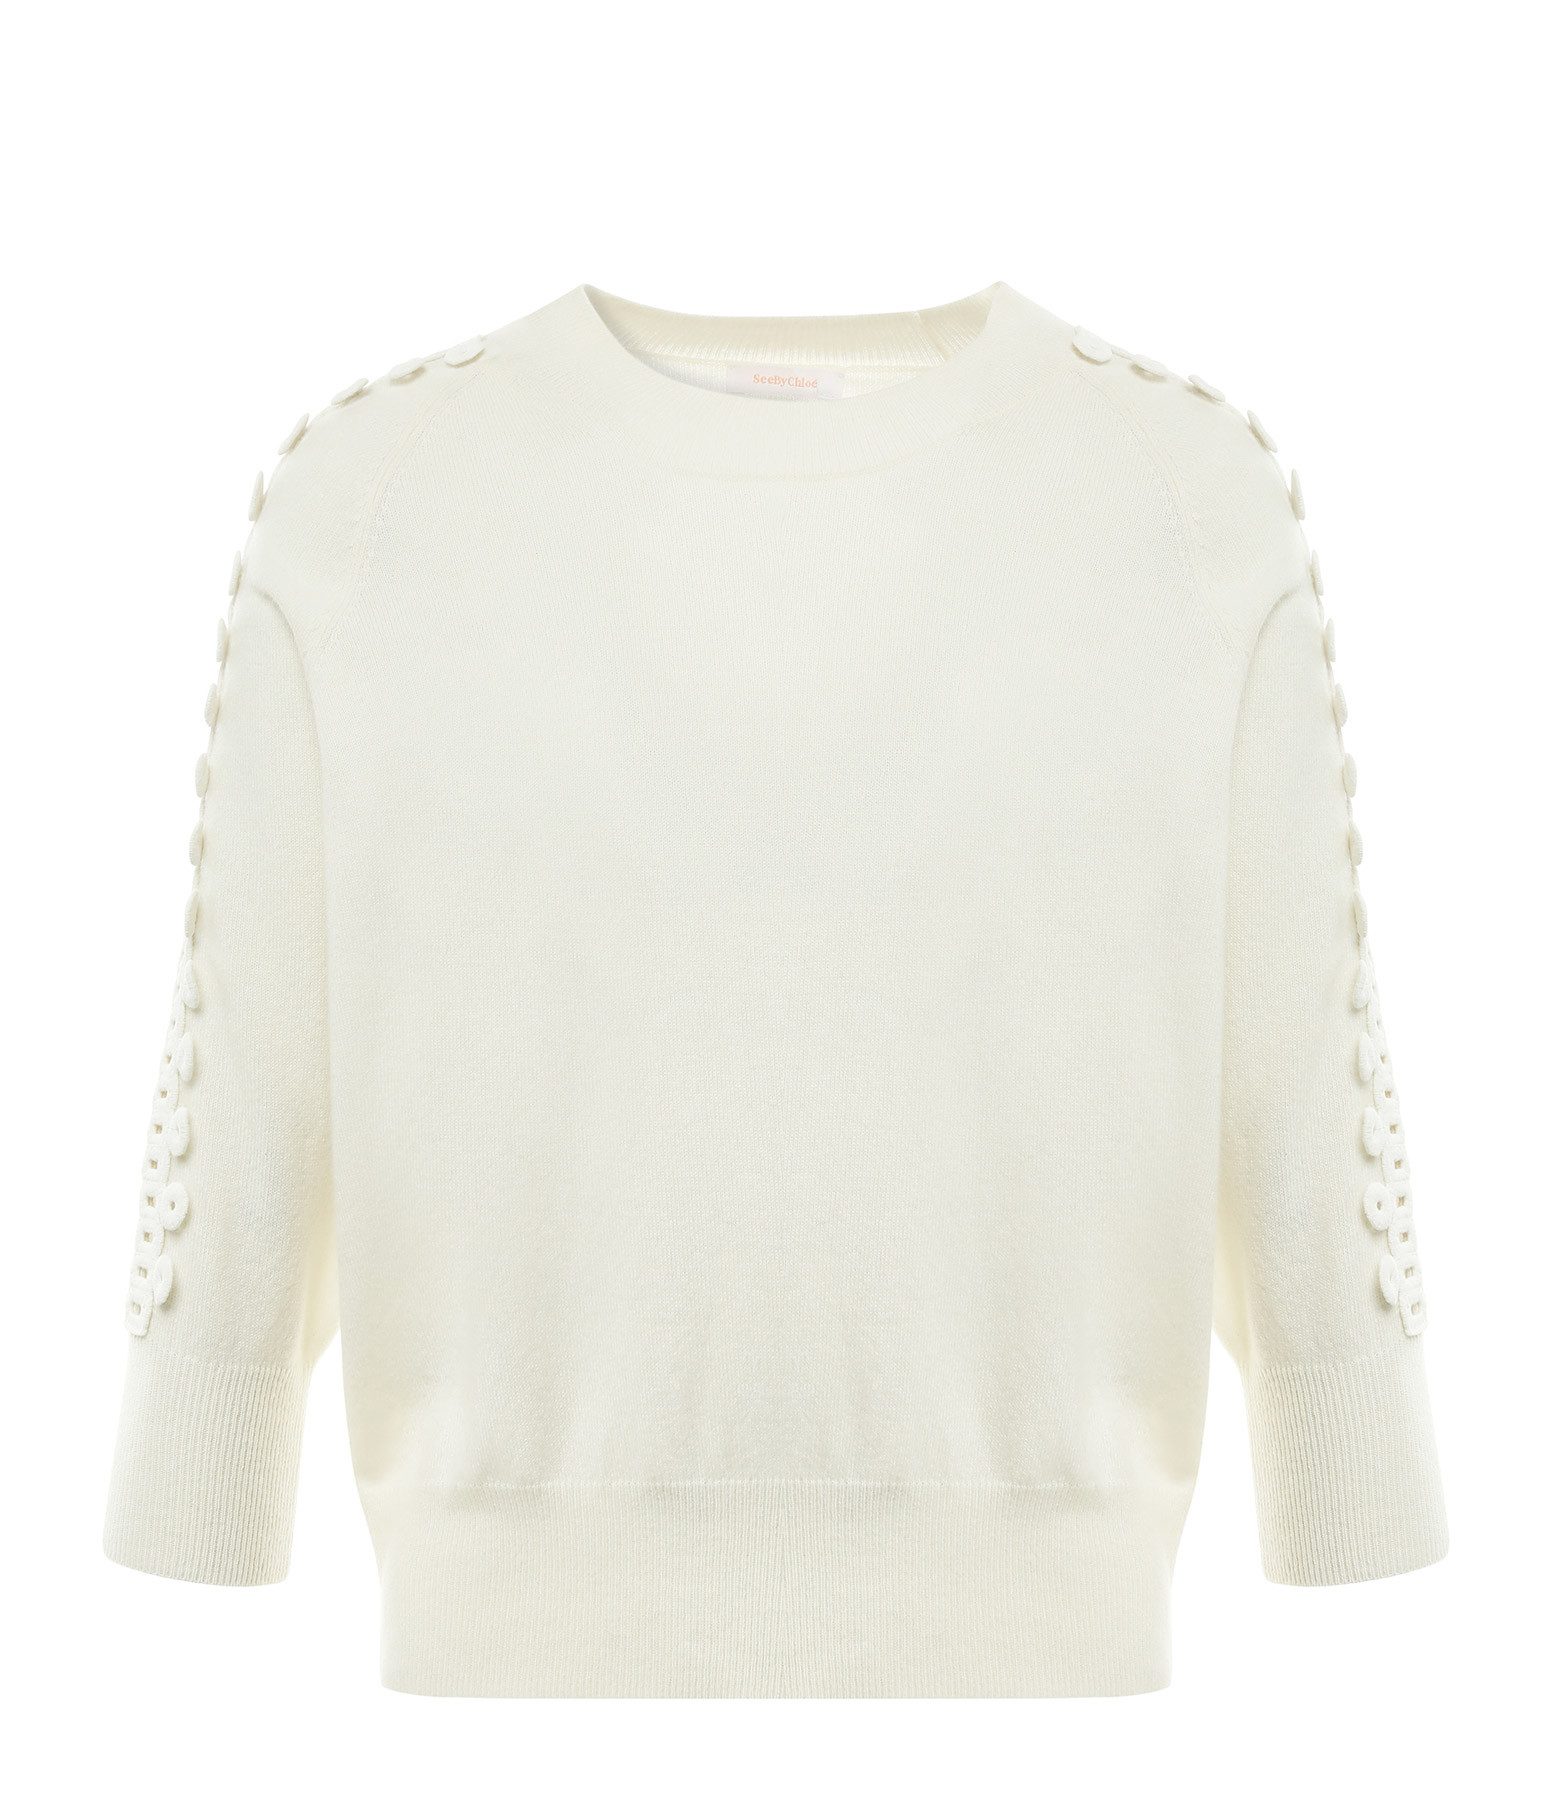 SEE BY CHLOE - Pull Col Rond Blanc